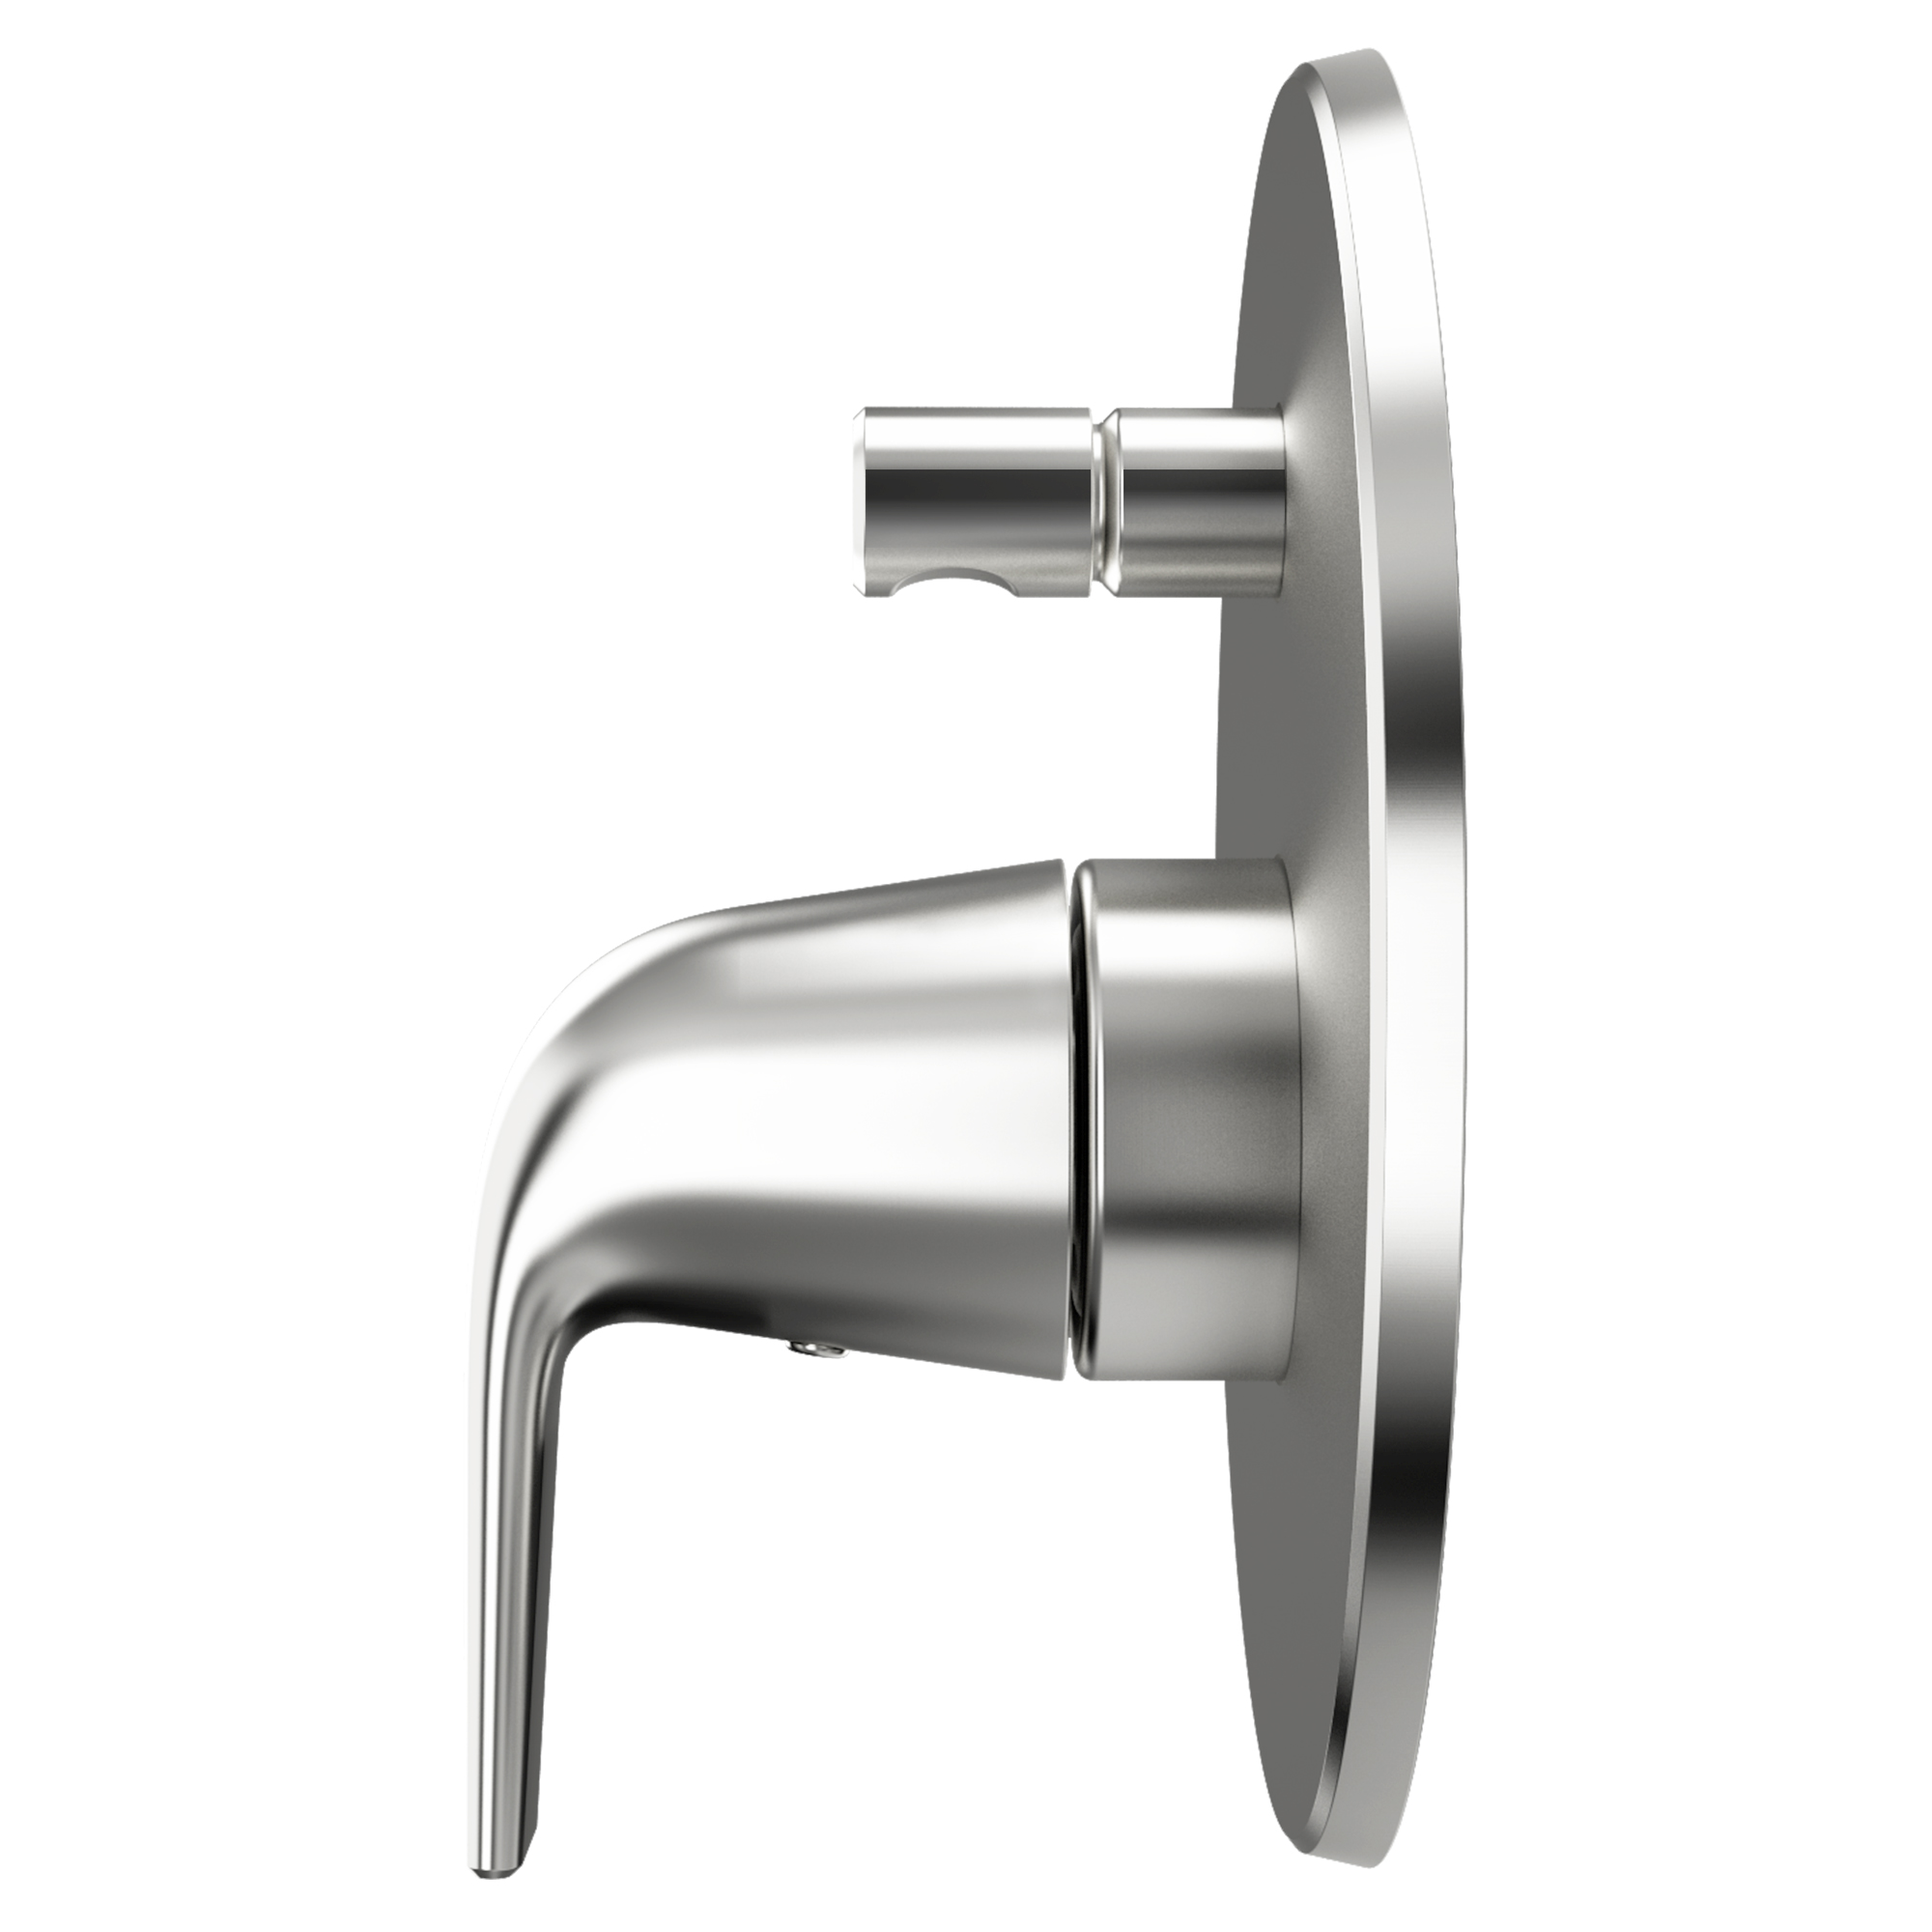 spoke handles balance dxv valve shower and product diverter with pressure percy trim tub tri